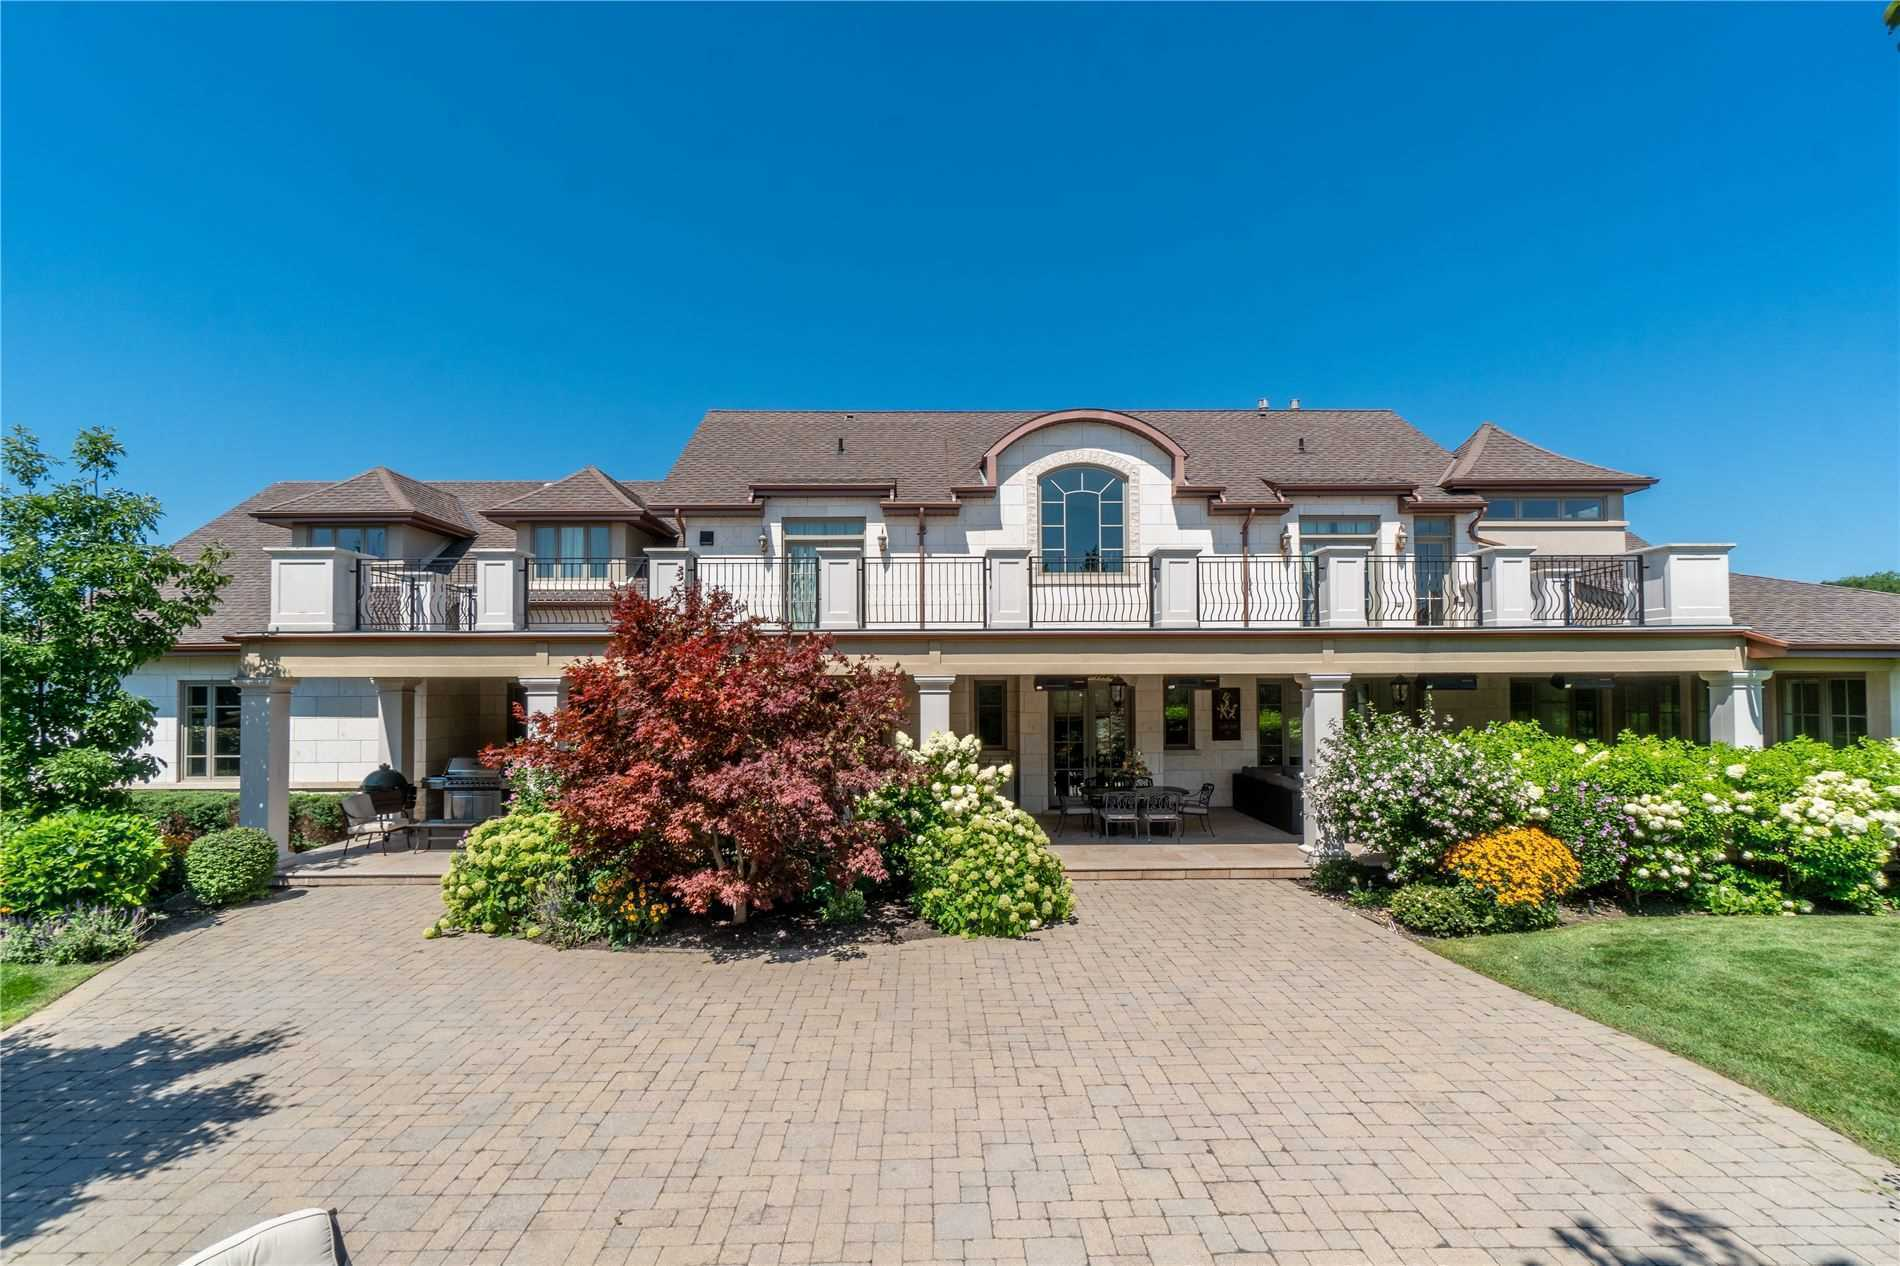 2594 Bluffs Way, Burlington, Ontario L7M0T8, 4 Bedrooms Bedrooms, 11 Rooms Rooms,6 BathroomsBathrooms,Detached,For Sale,Bluffs,W5151722